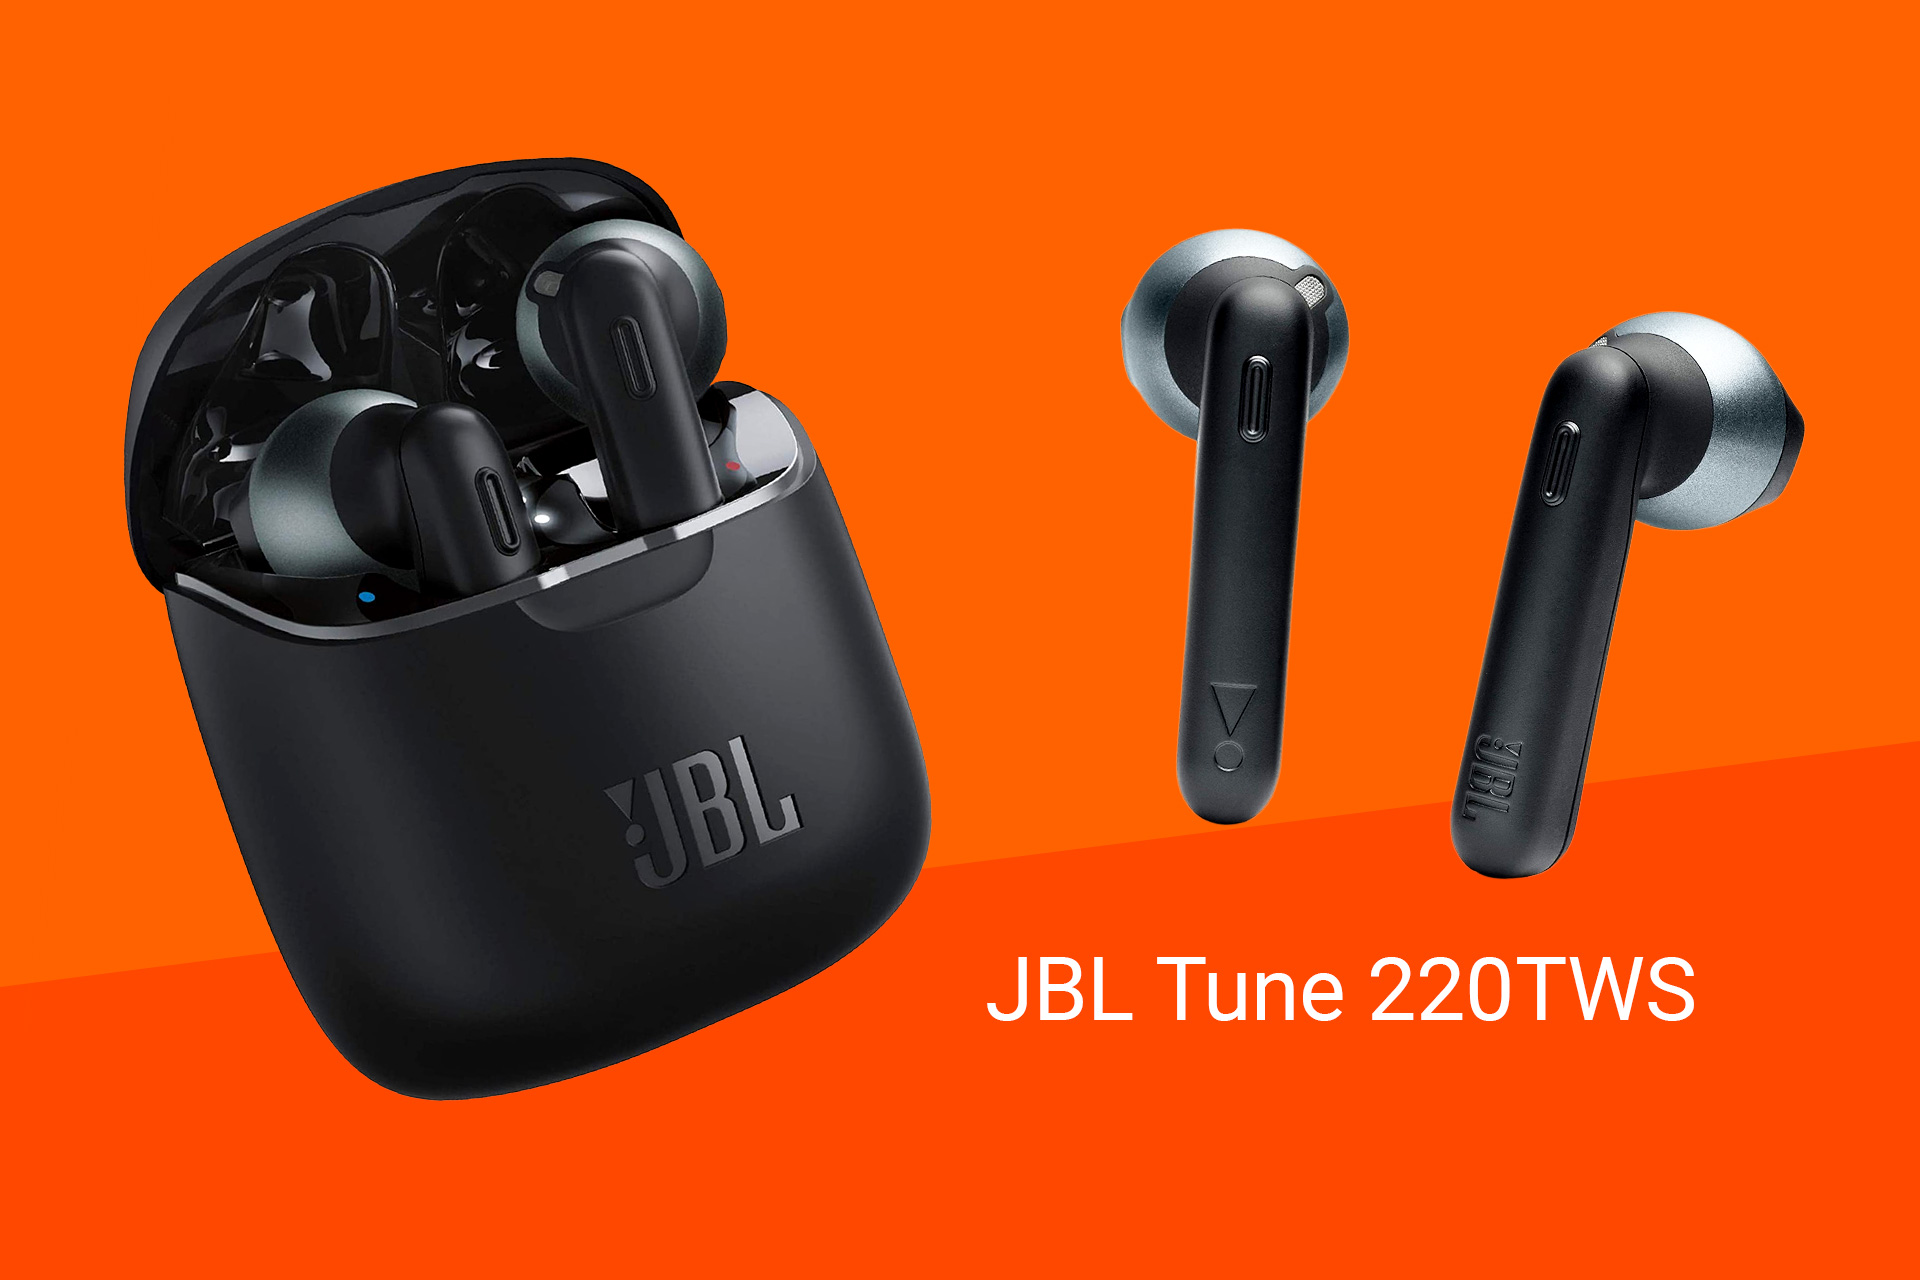 JBL Tune 220TWS – Tech & audio review, wireless Bluetooth earbuds with mic featured image